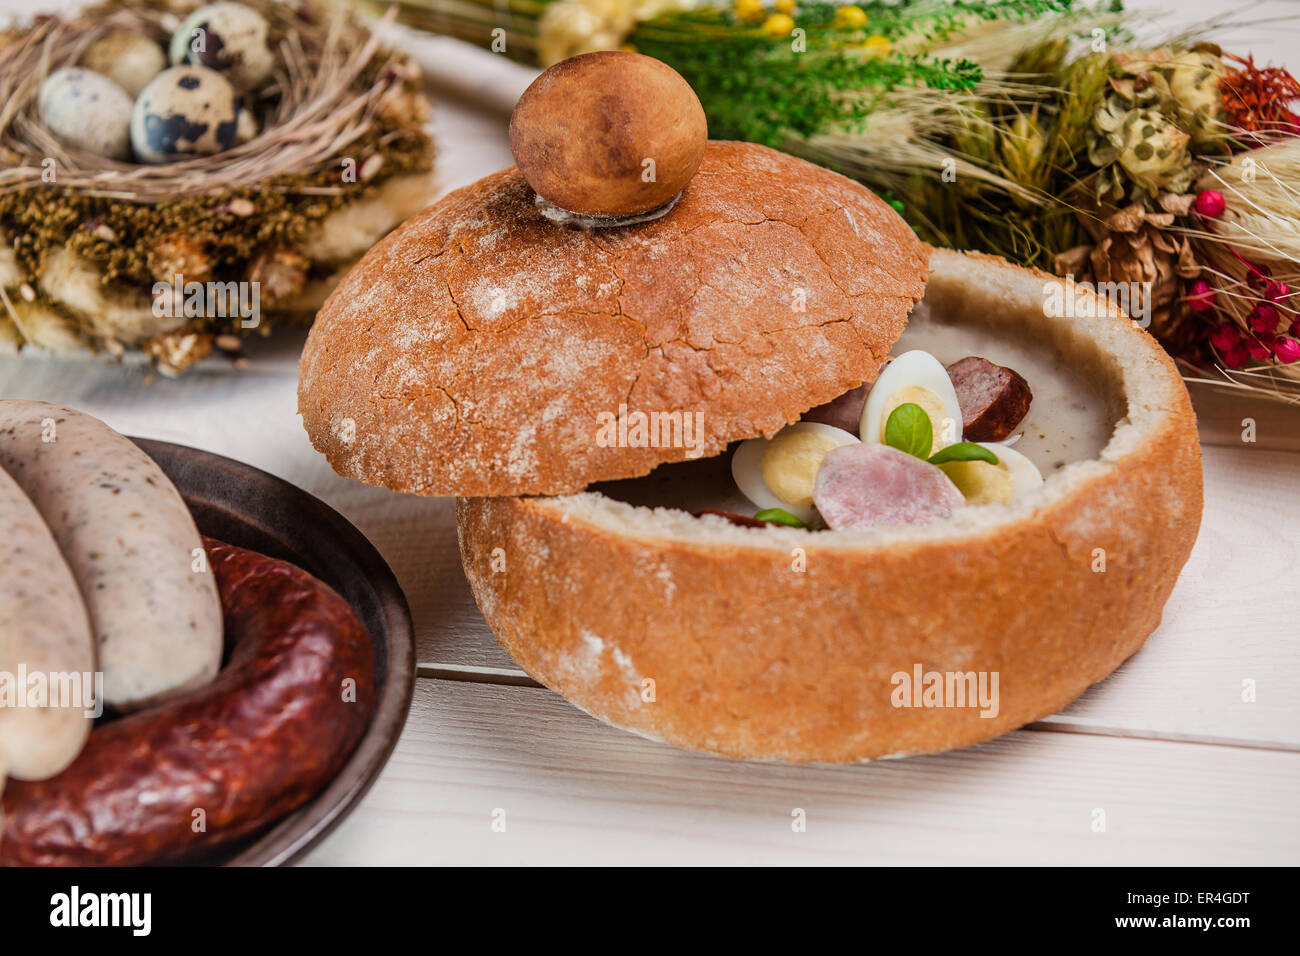 Abundance on easter holiday table. Debica, Poland - Stock Image